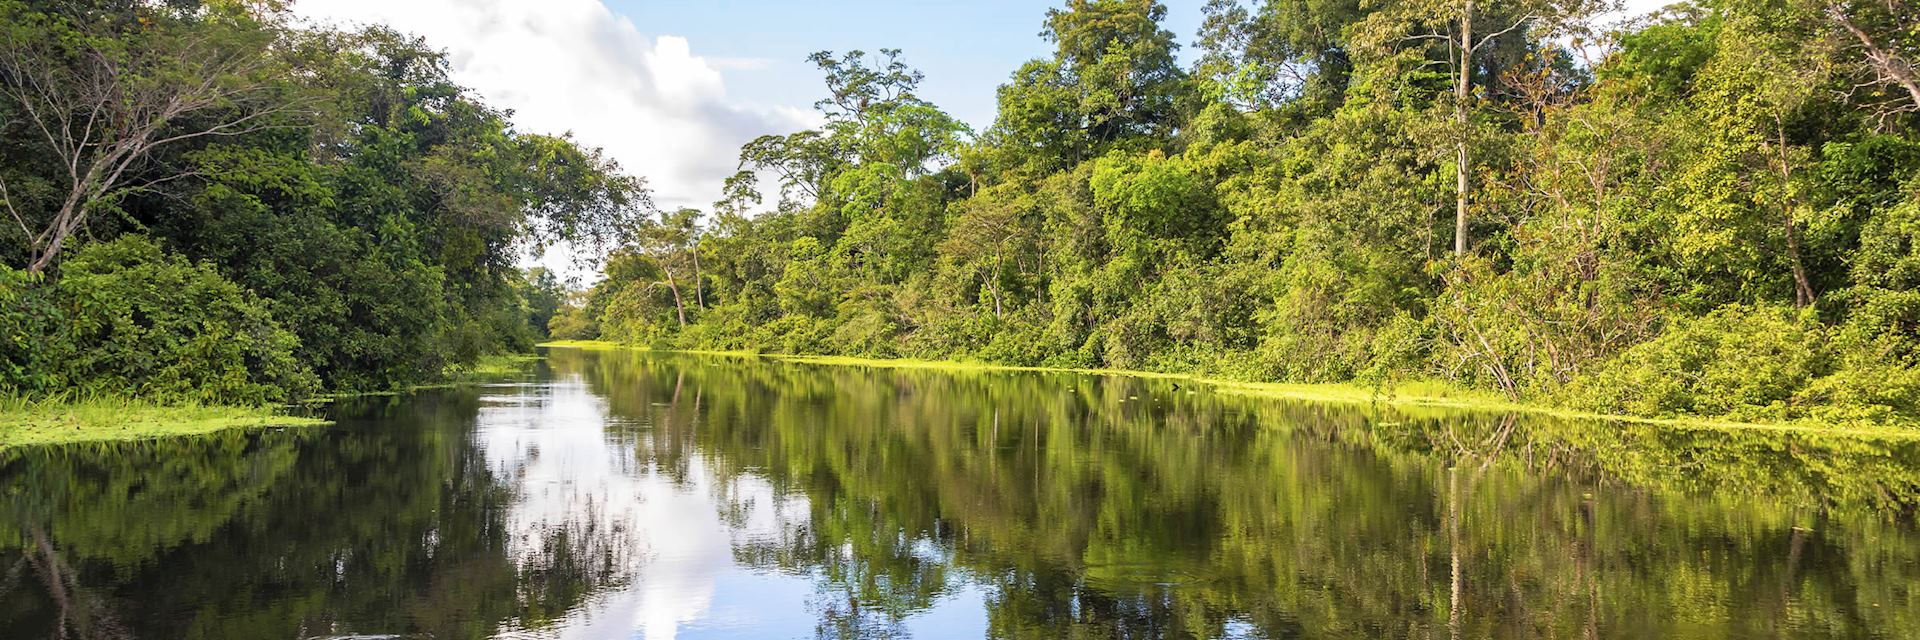 The Peruvian Amazon